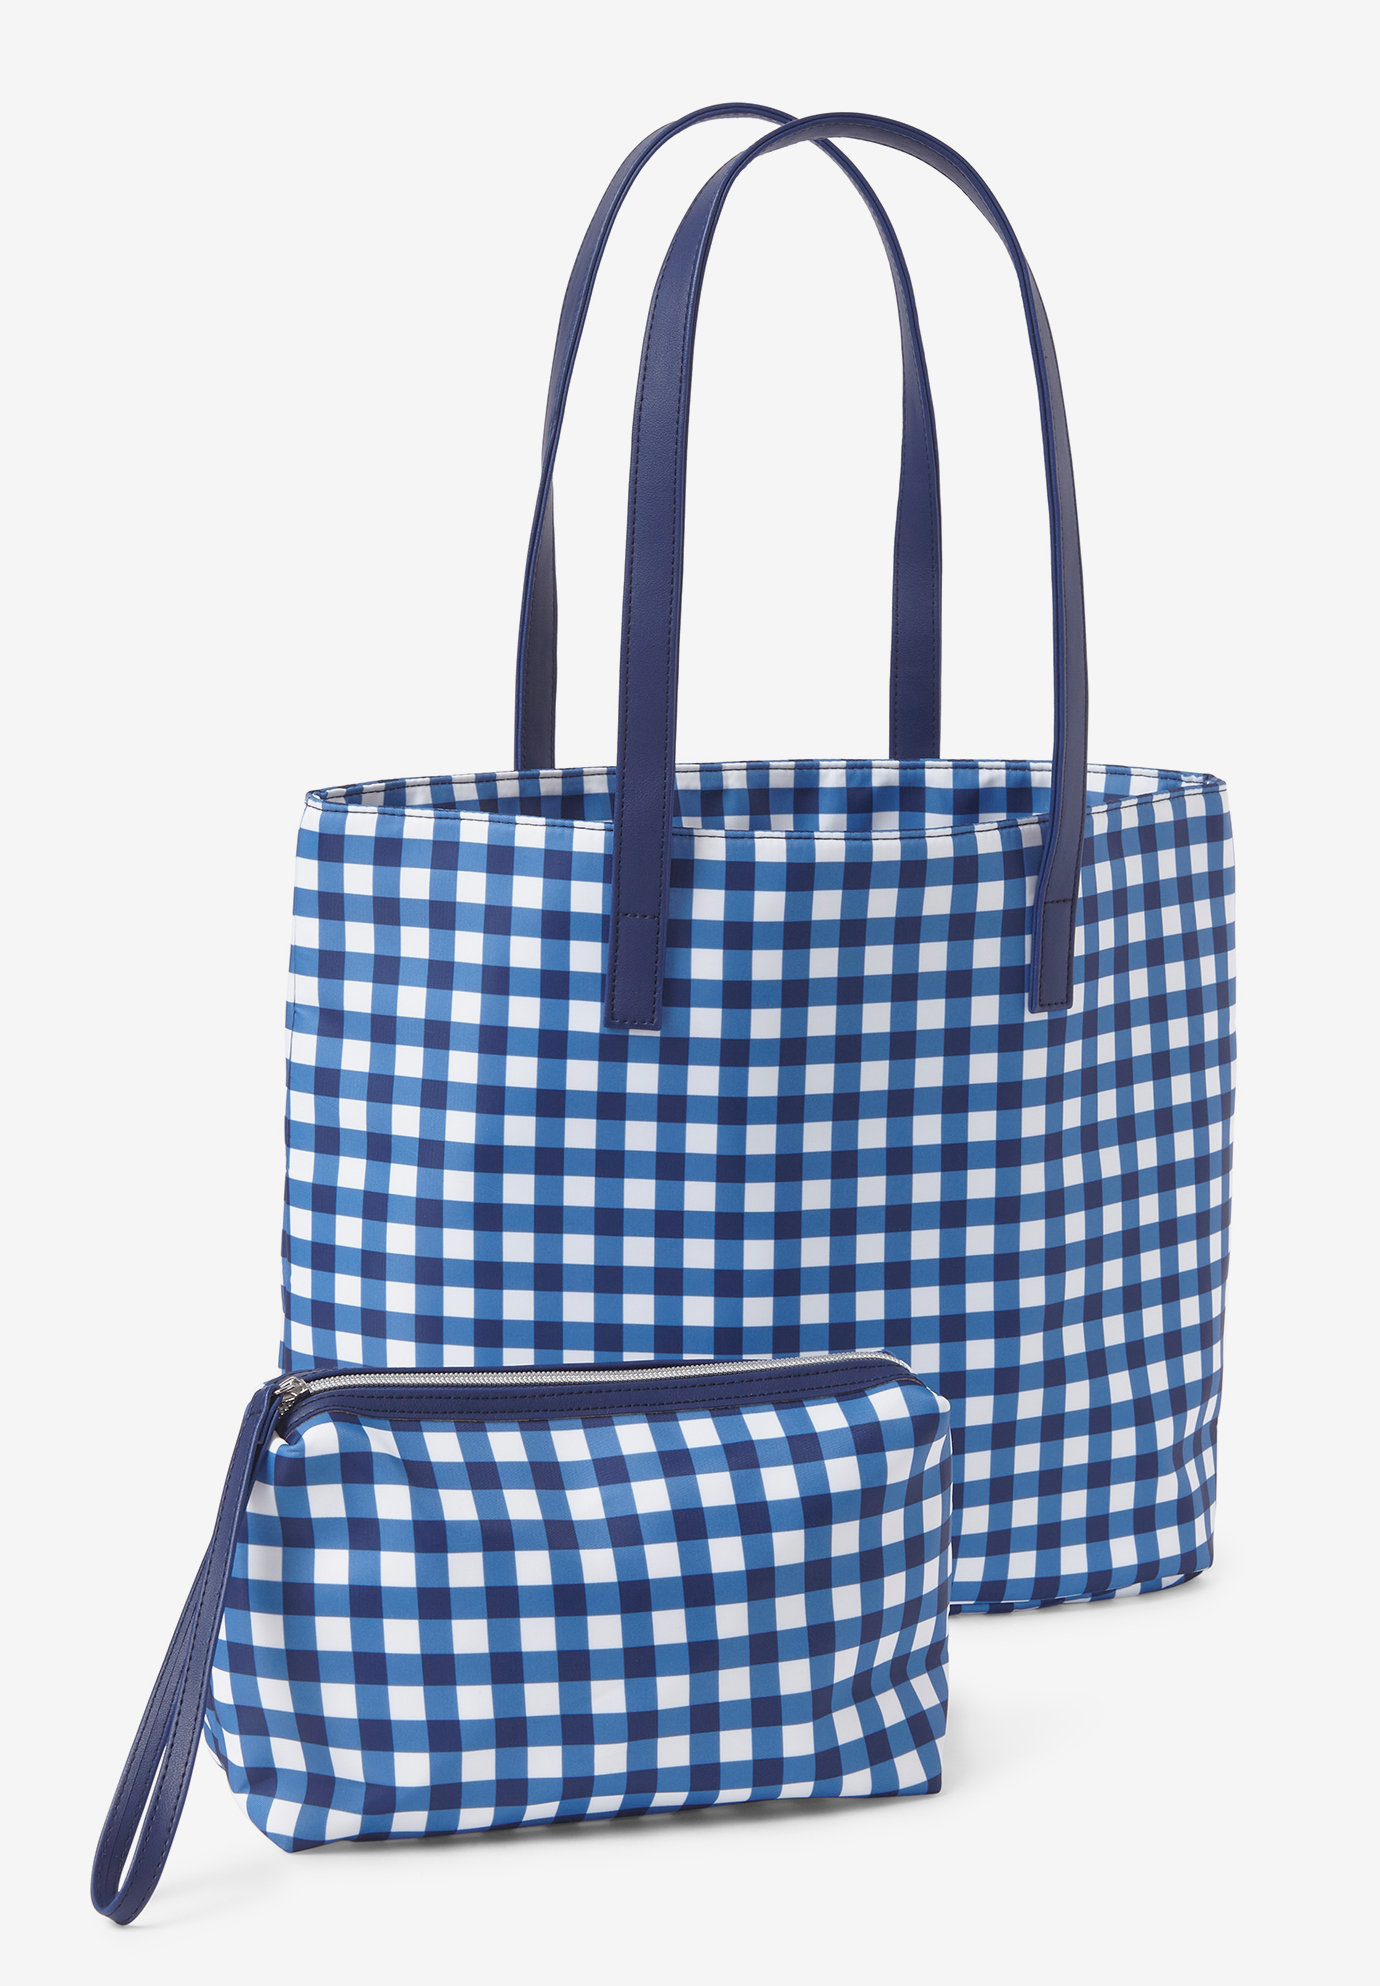 2-Piece Tote Set, EVENING BLUE GINGHAM